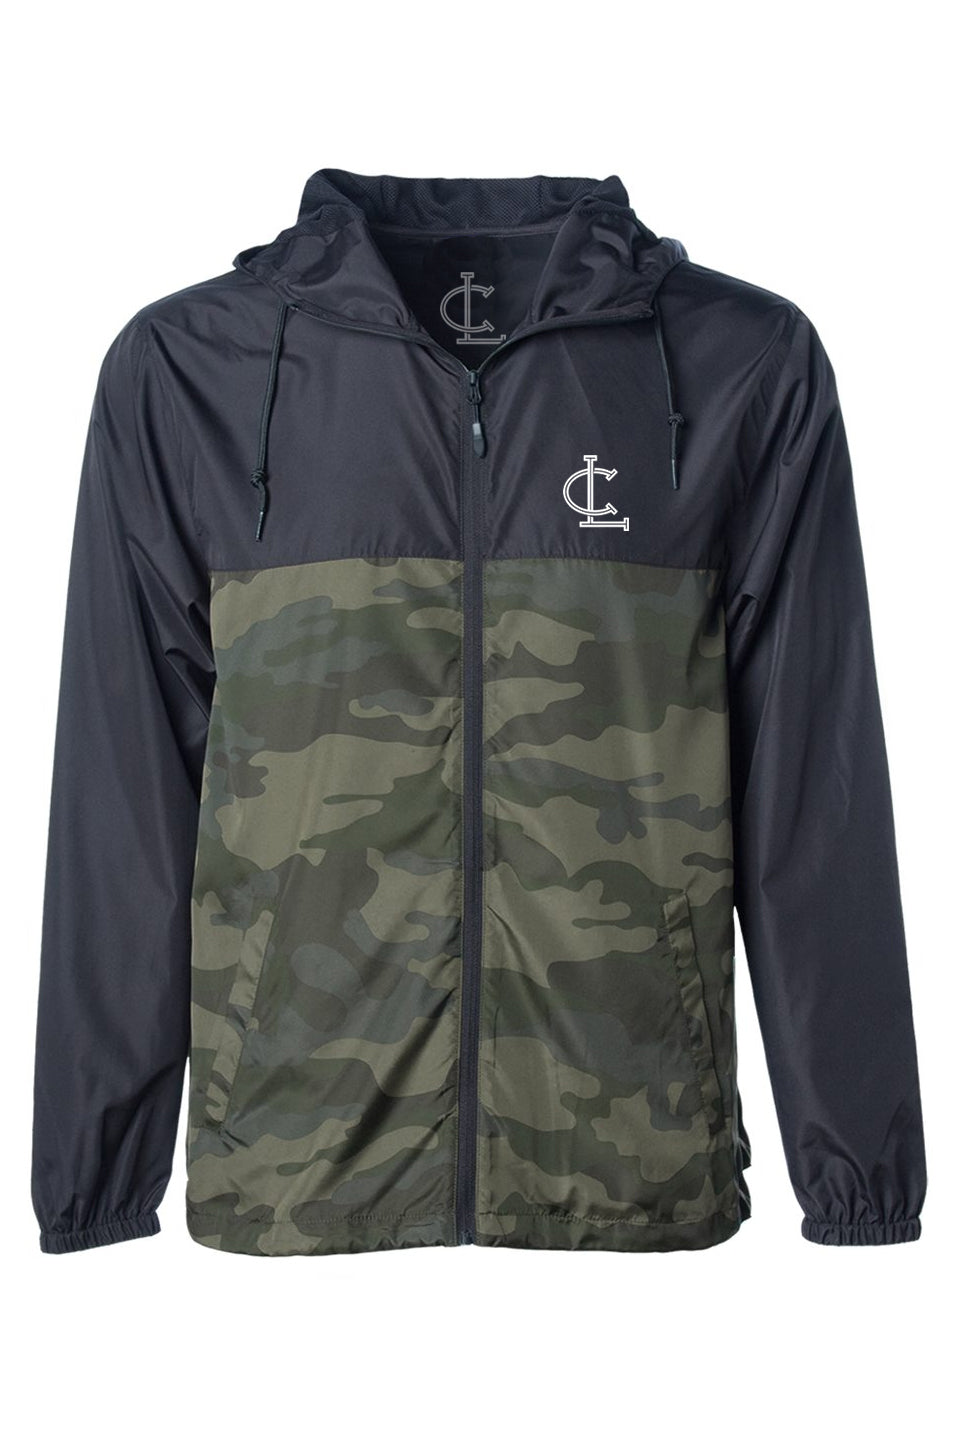 Full Zip Windbreaker Jacket - Black/Camo